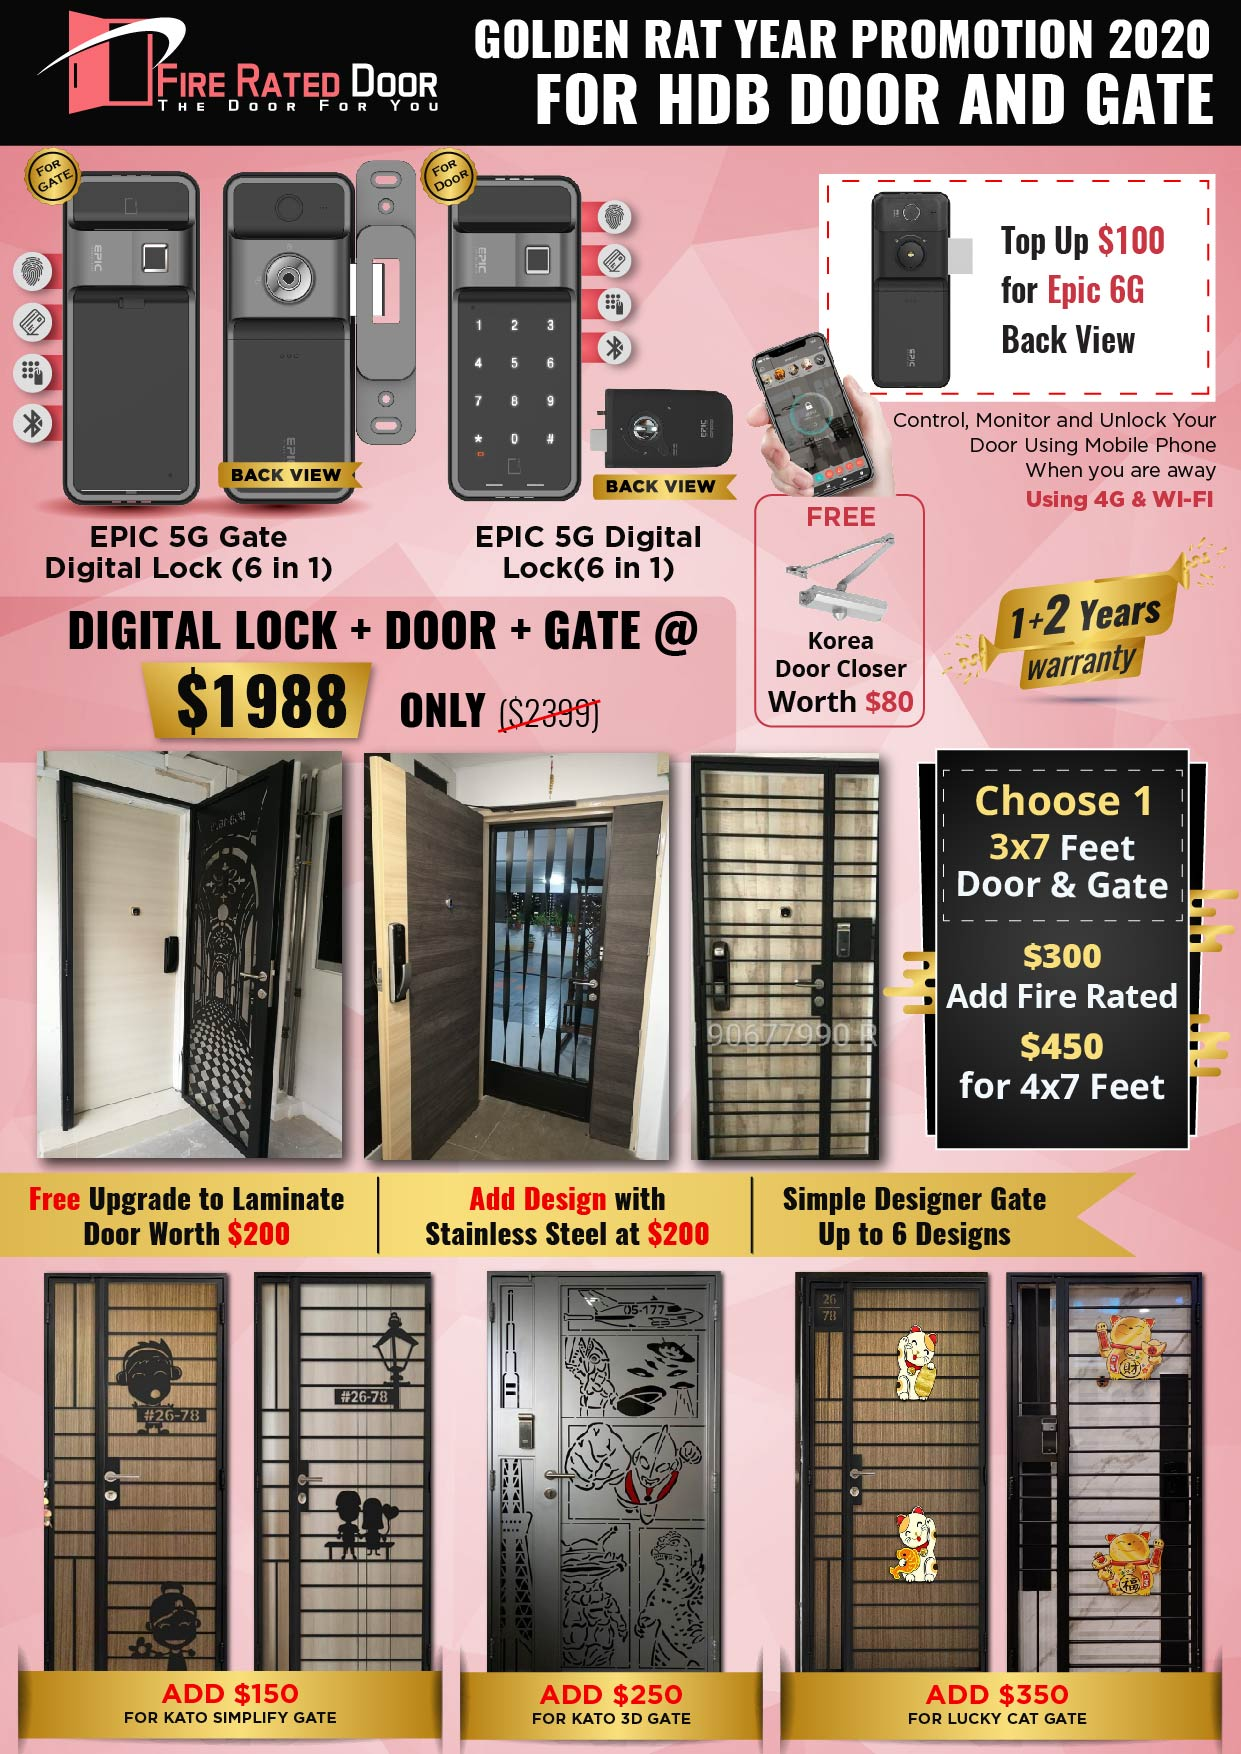 Golden Rat Year HDB Door and Gate Promotion with EPIC Gate Digital Lock and 5G Digital Lock